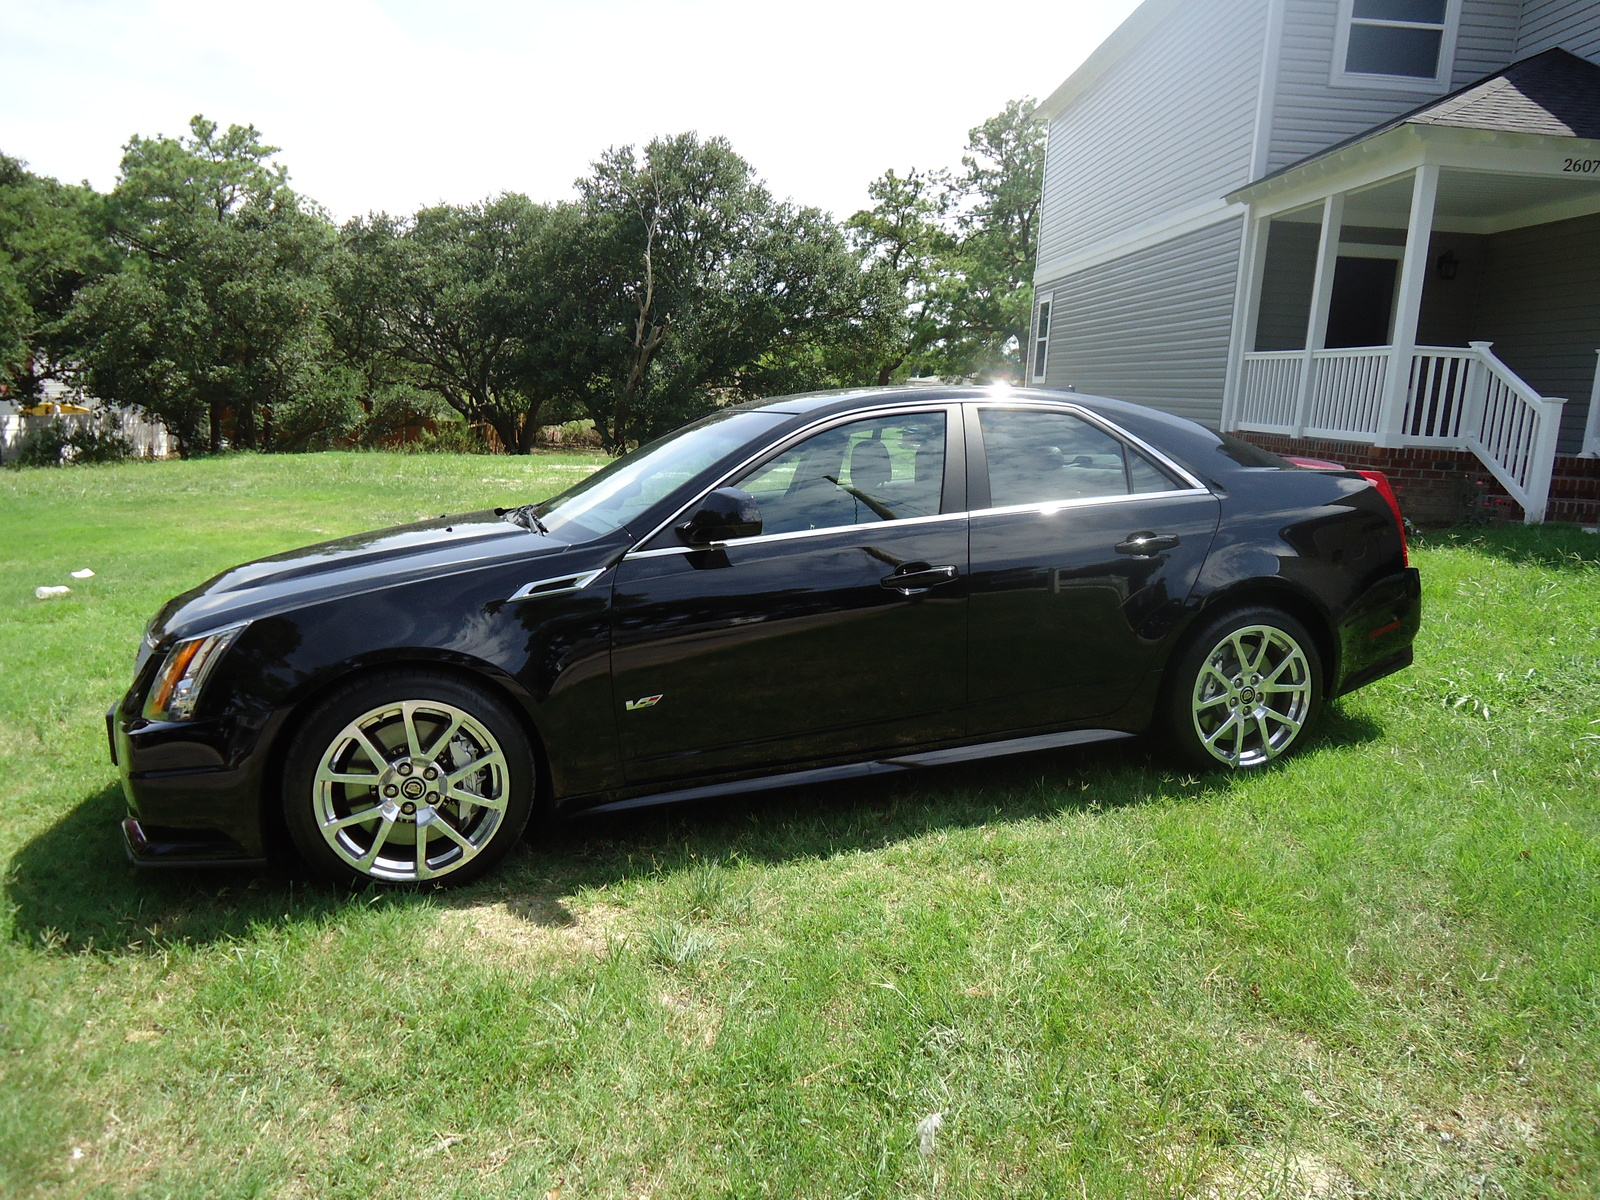 used cadillac cts v for sale cargurus. Black Bedroom Furniture Sets. Home Design Ideas